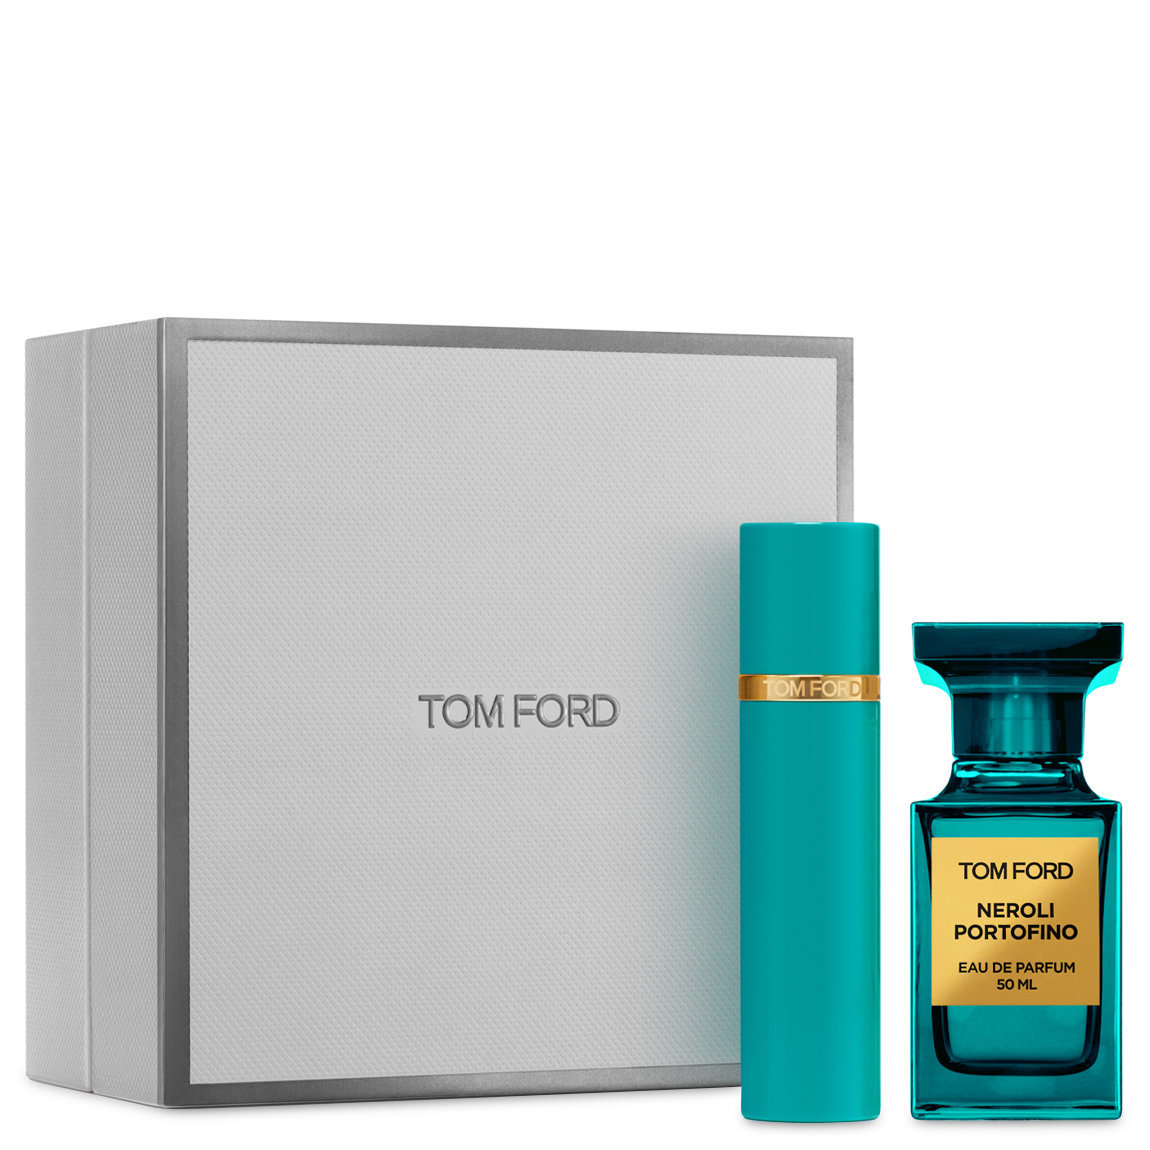 TOM FORD Private Blend Neroli Portofino Set product swatch.